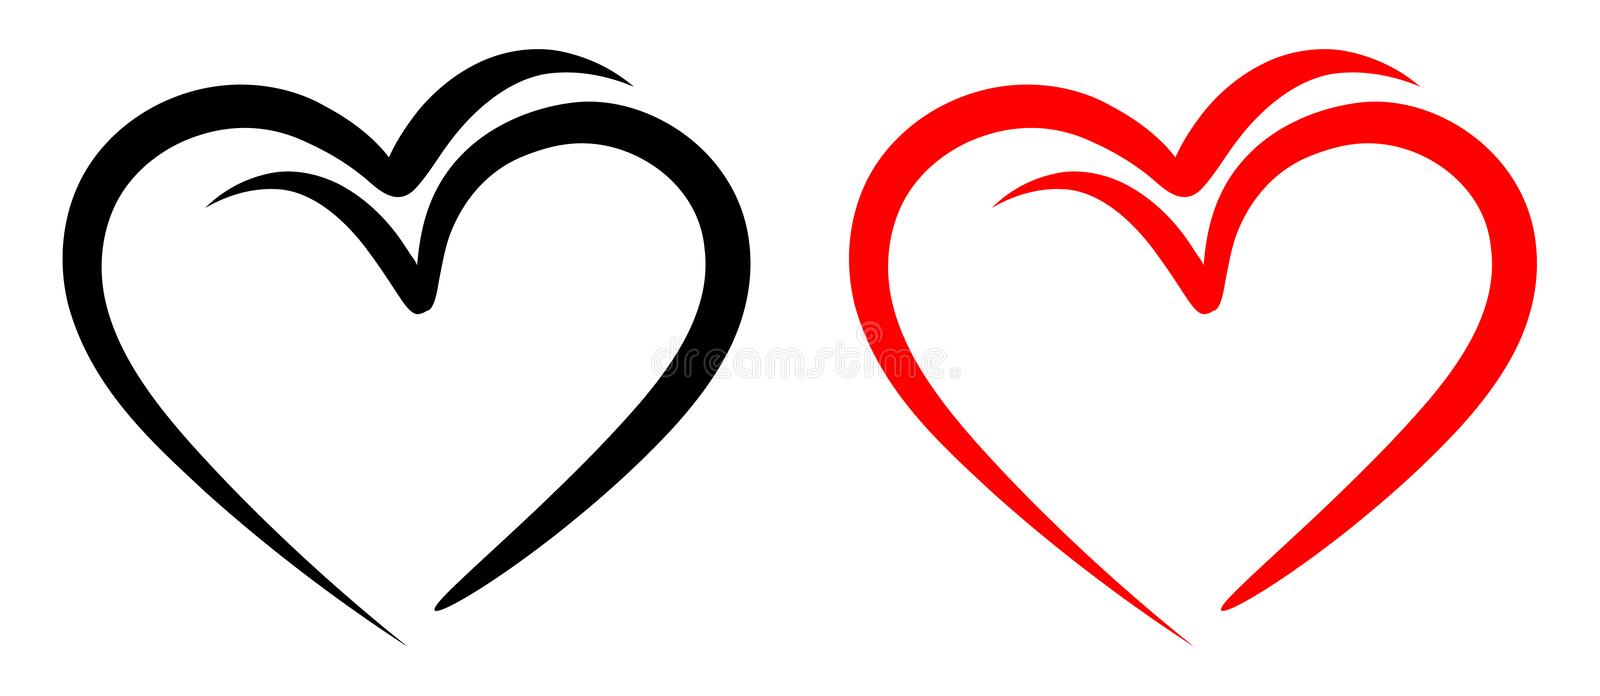 Love birds with red and black two hearts. Birds with love symbol with red and black two hearts on simple illustration royalty free illustration